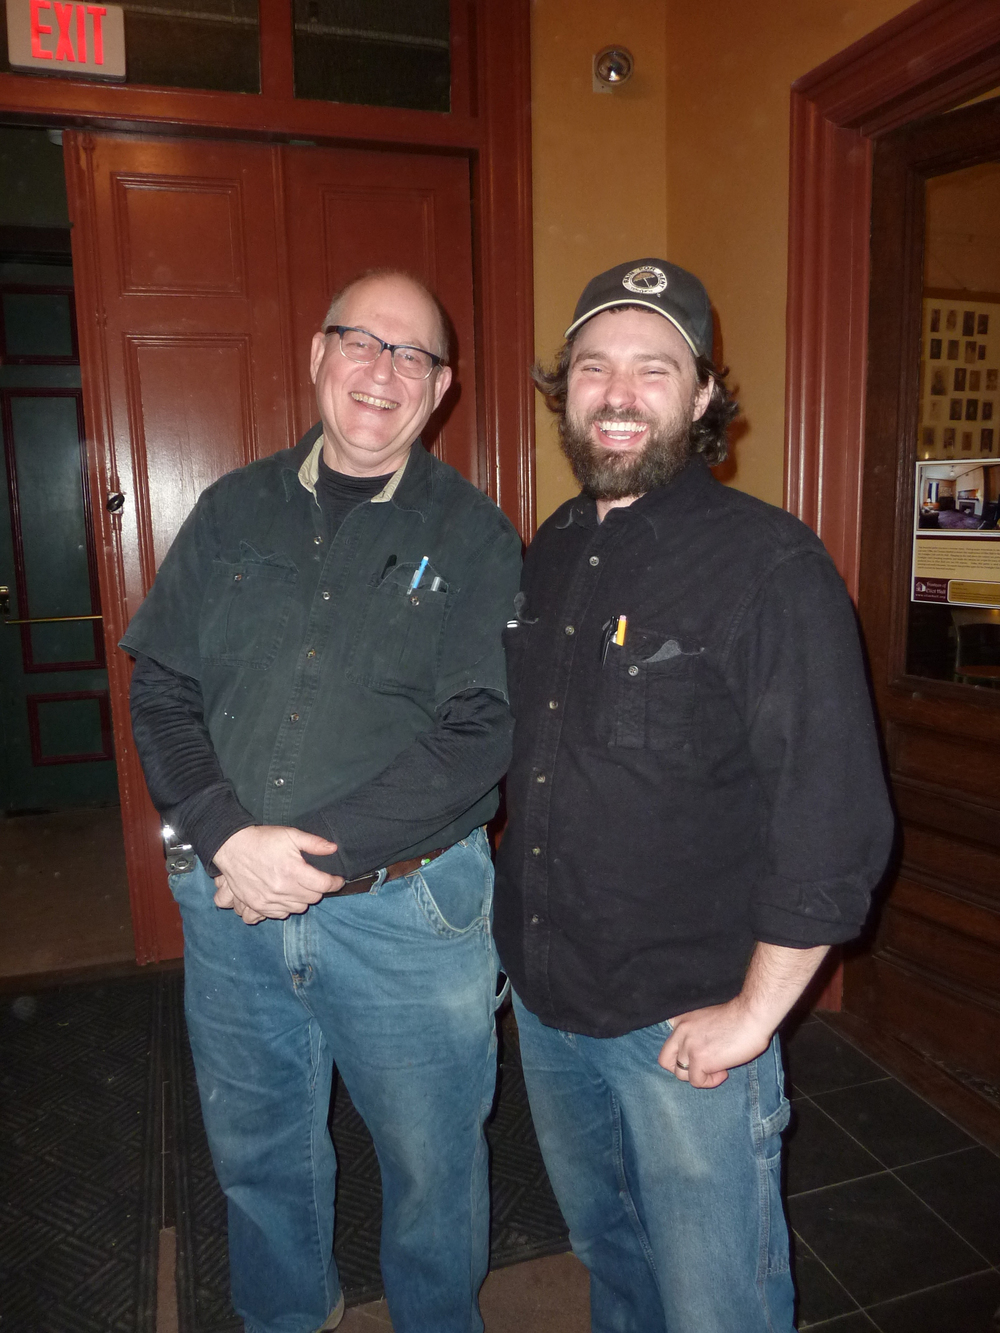 Longtime BBR member Jay Larson, left, also a member is IATSE, with Adam McClain.